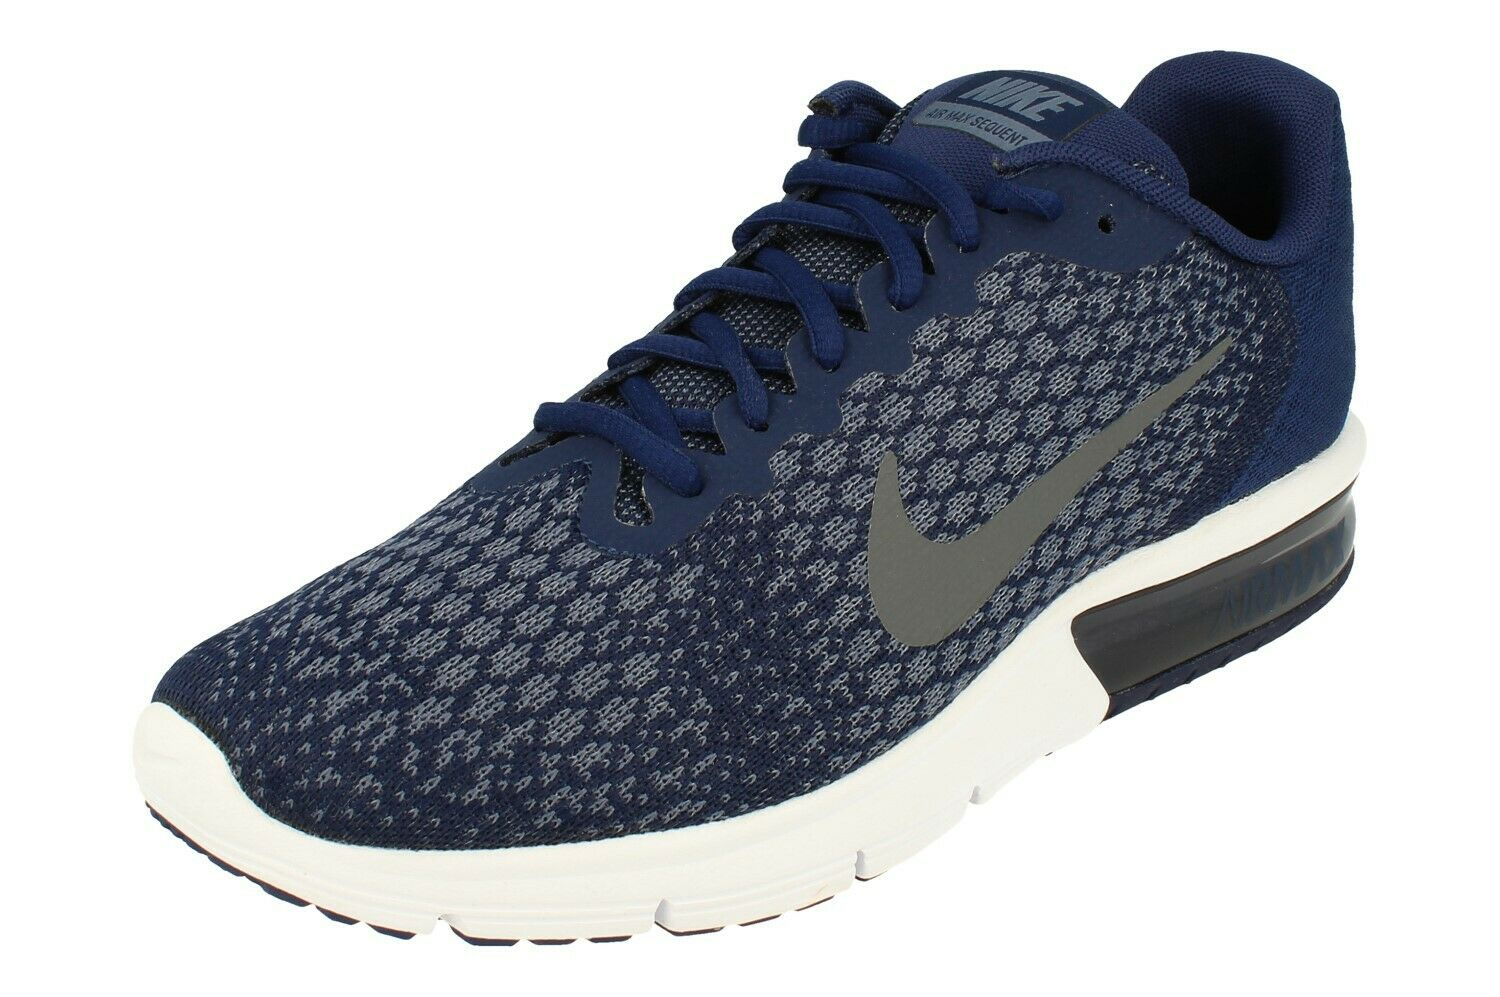 Nike Air Max Sequent 2 Mens Running Trainers 852461 Sneakers shoes 406